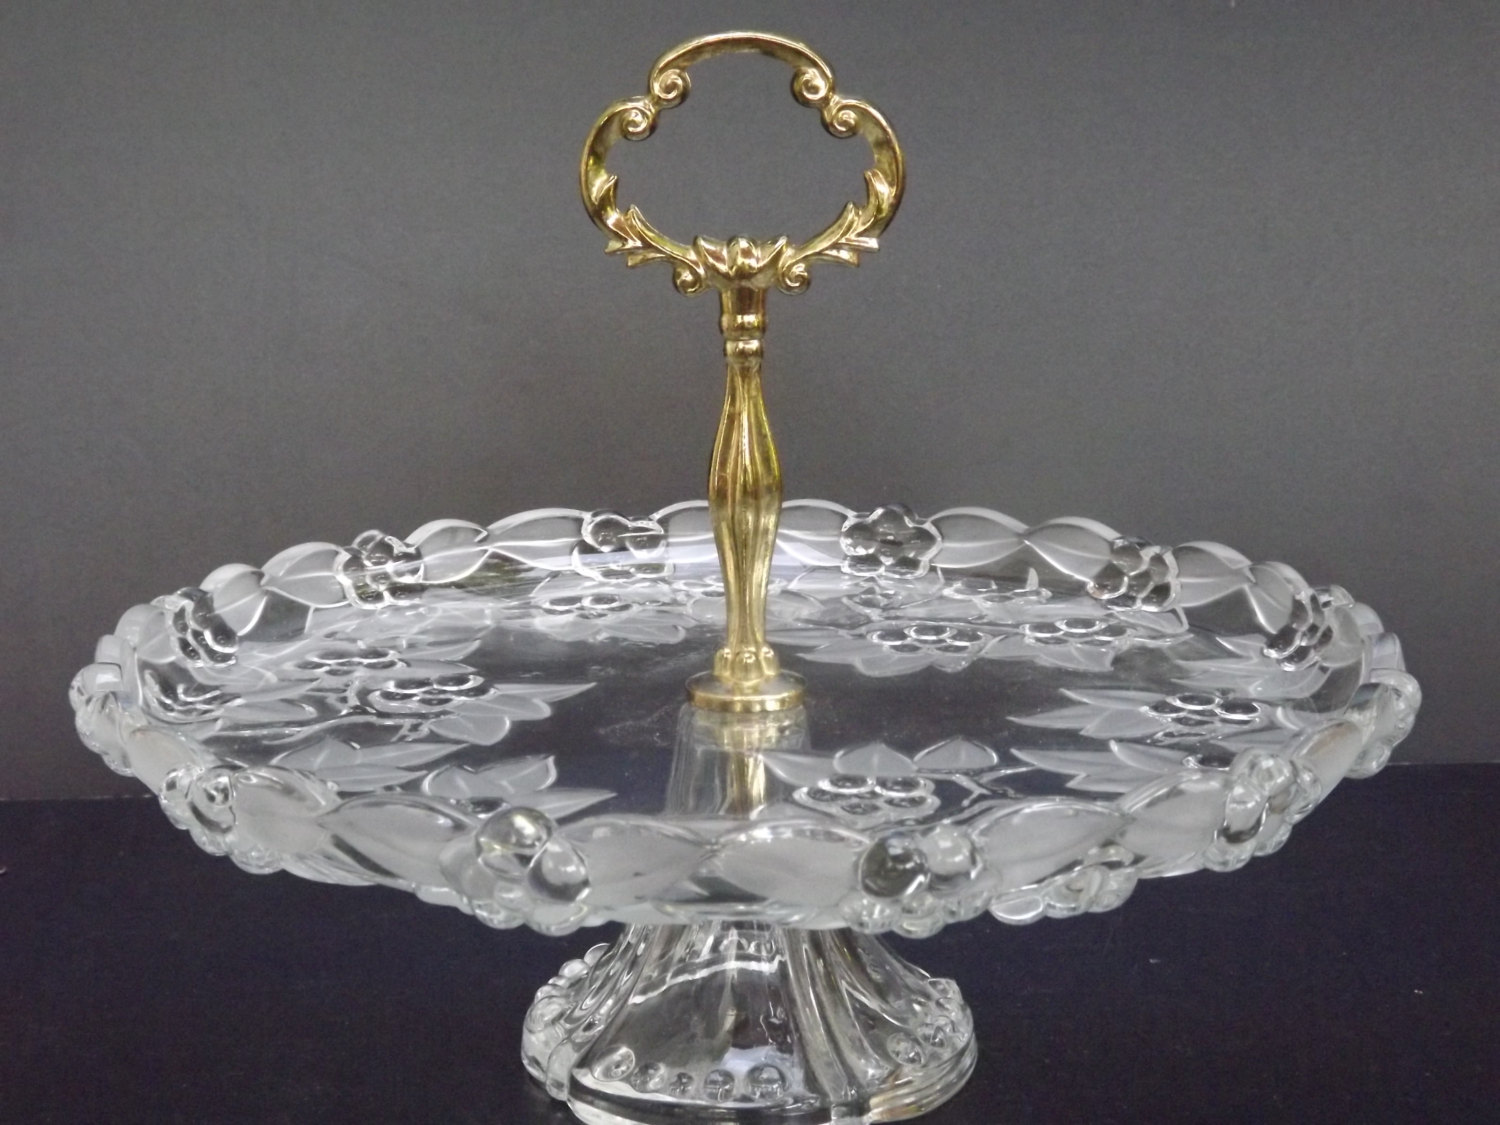 Mikasa Poinsettia Frosted Glass Serving Tray